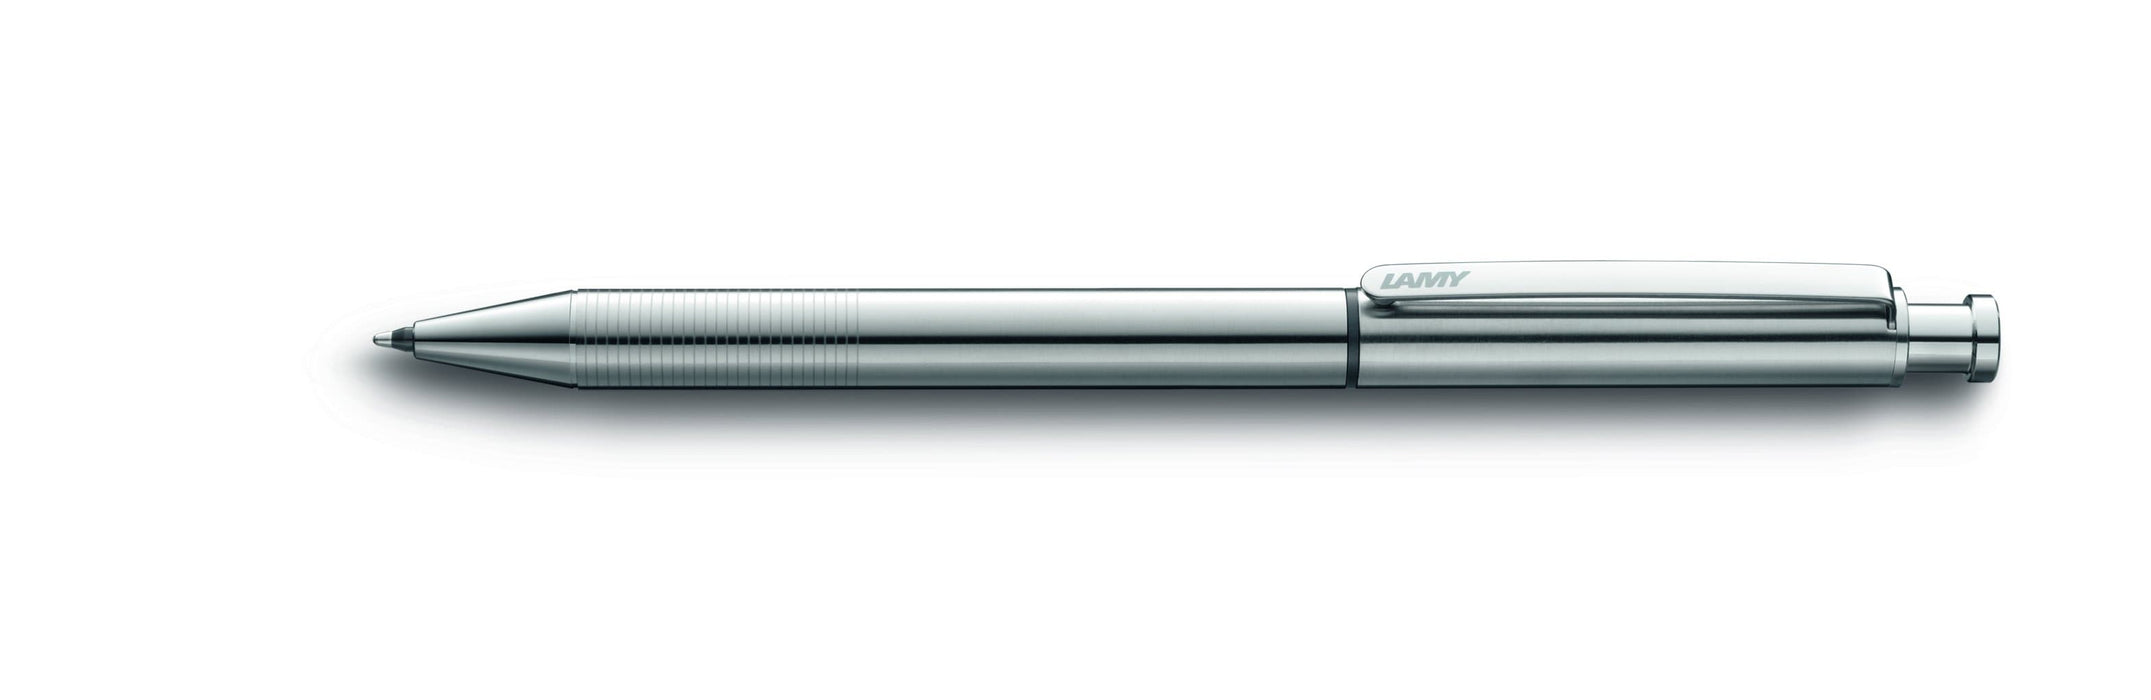 ST Twin Pen/Pencil 0.5mm - Blesket Canada